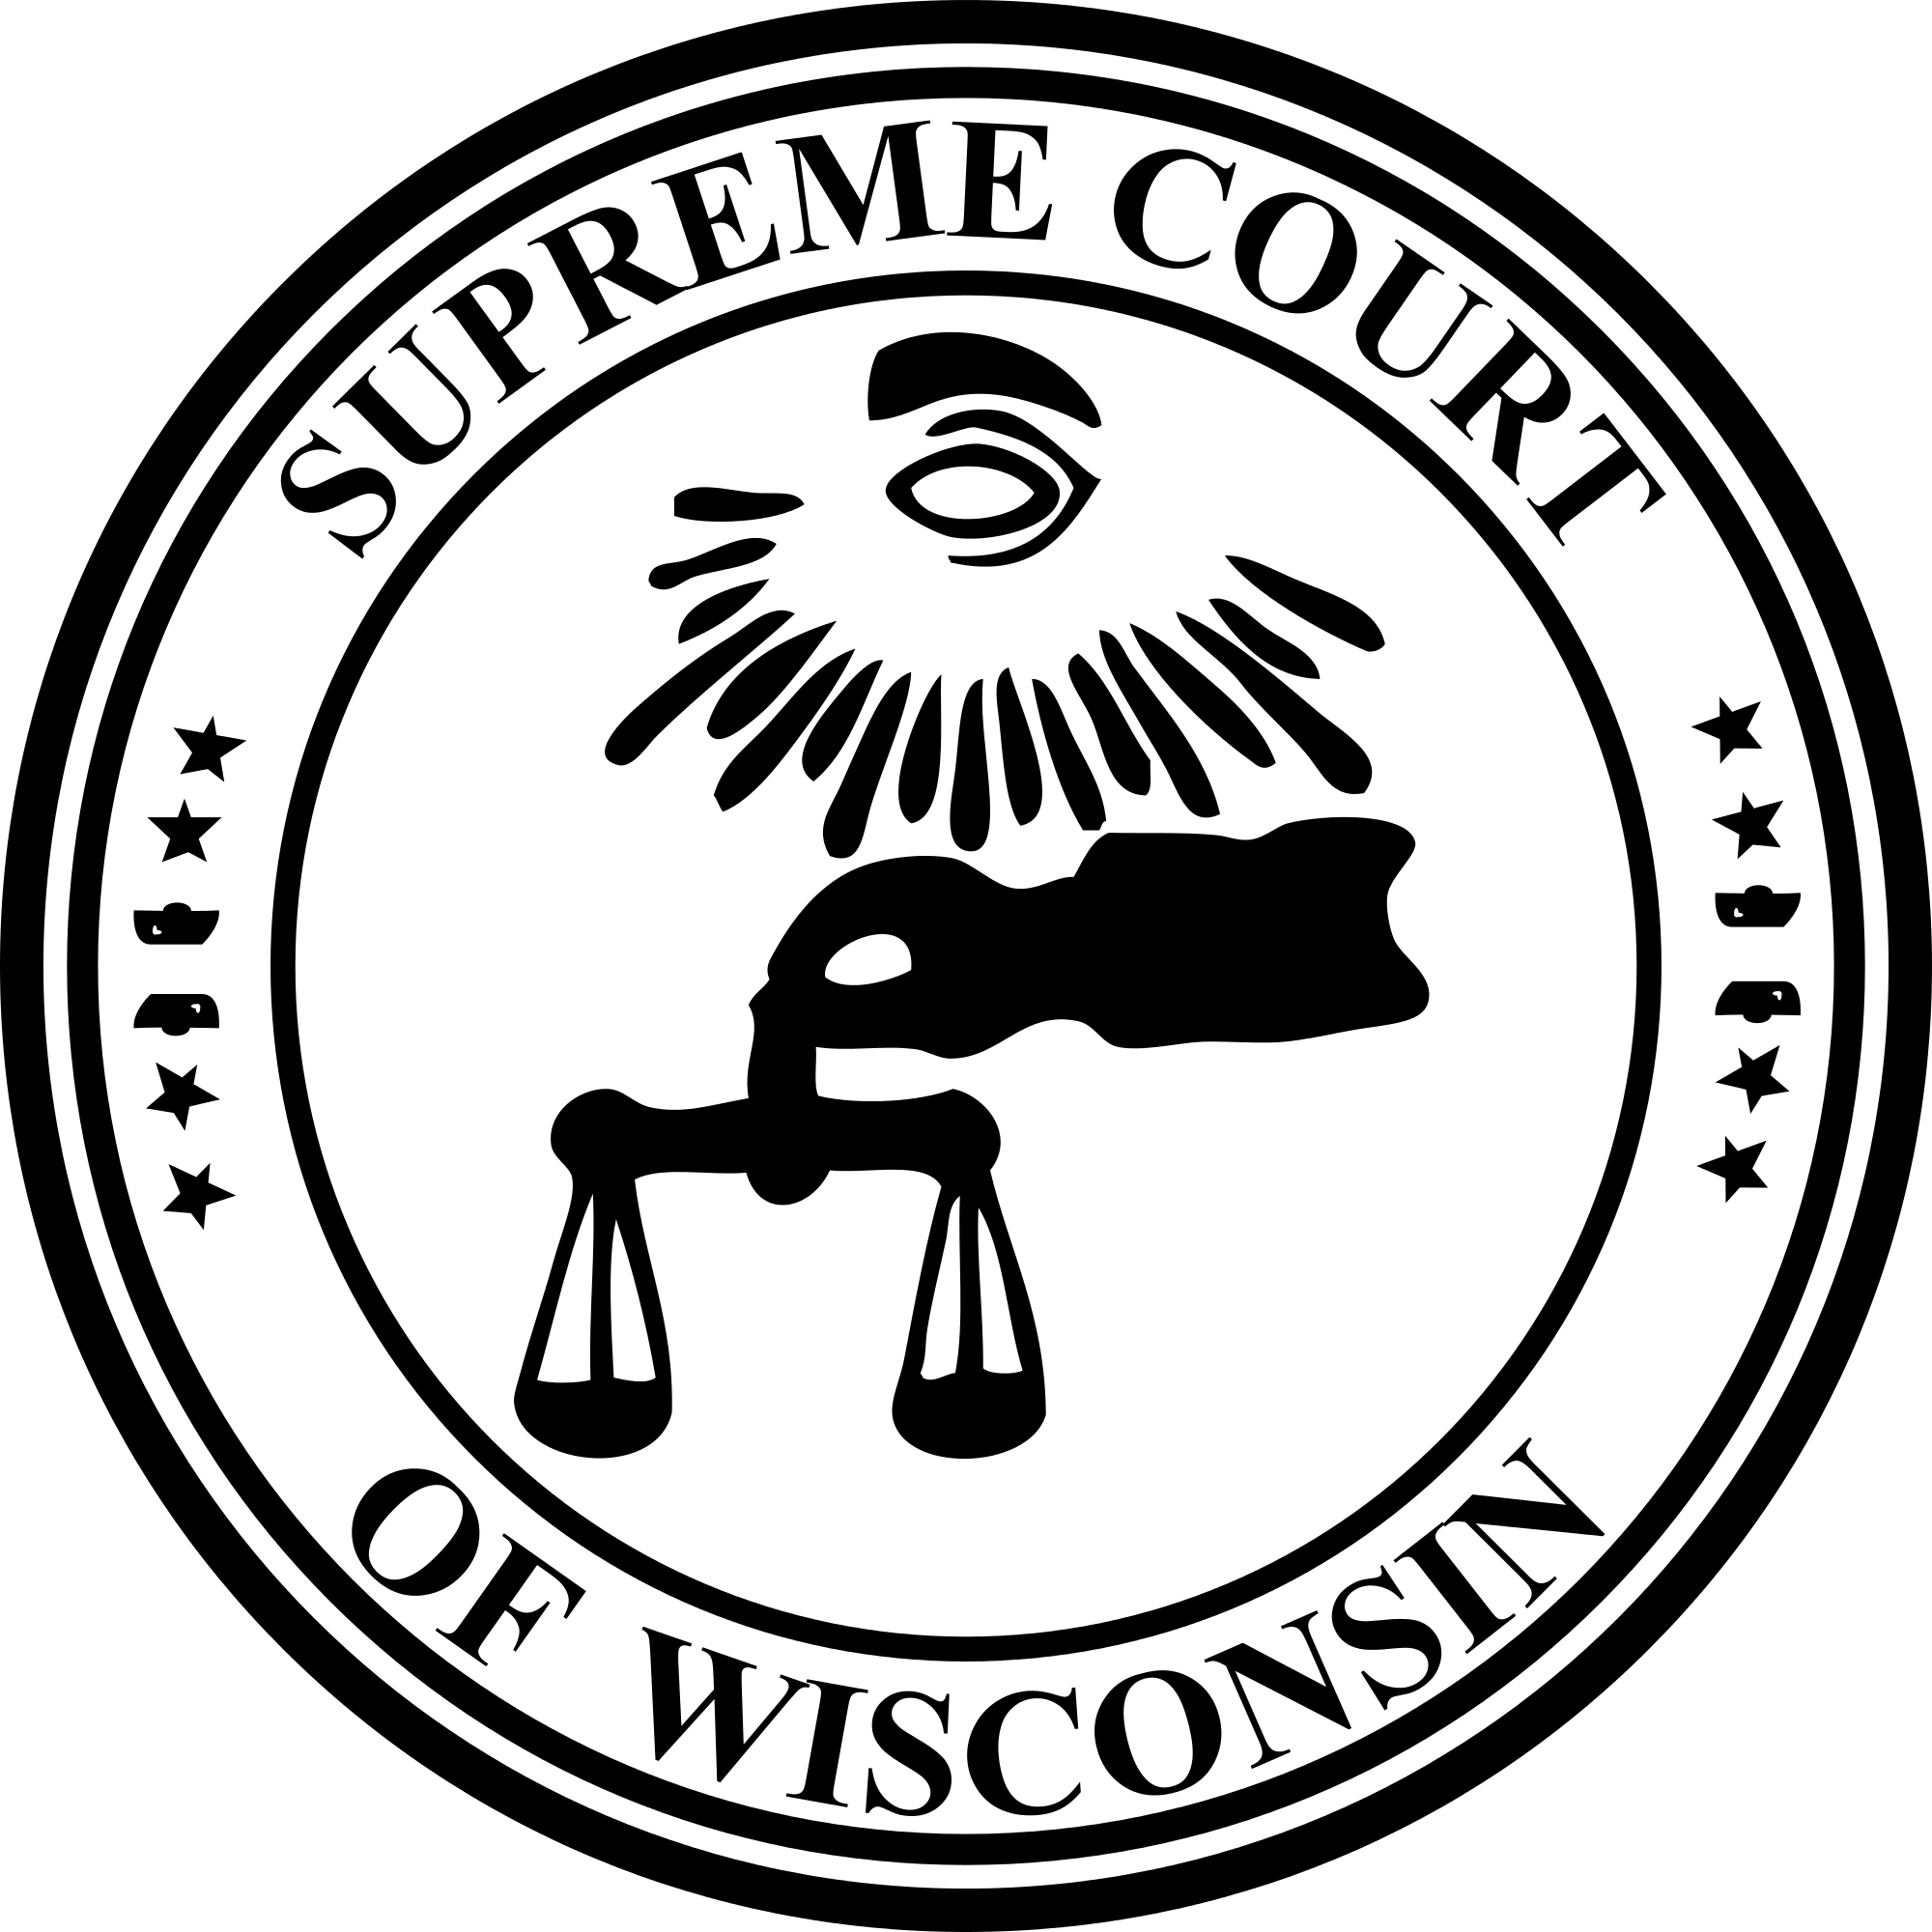 Courts svg seal. File of the supreme